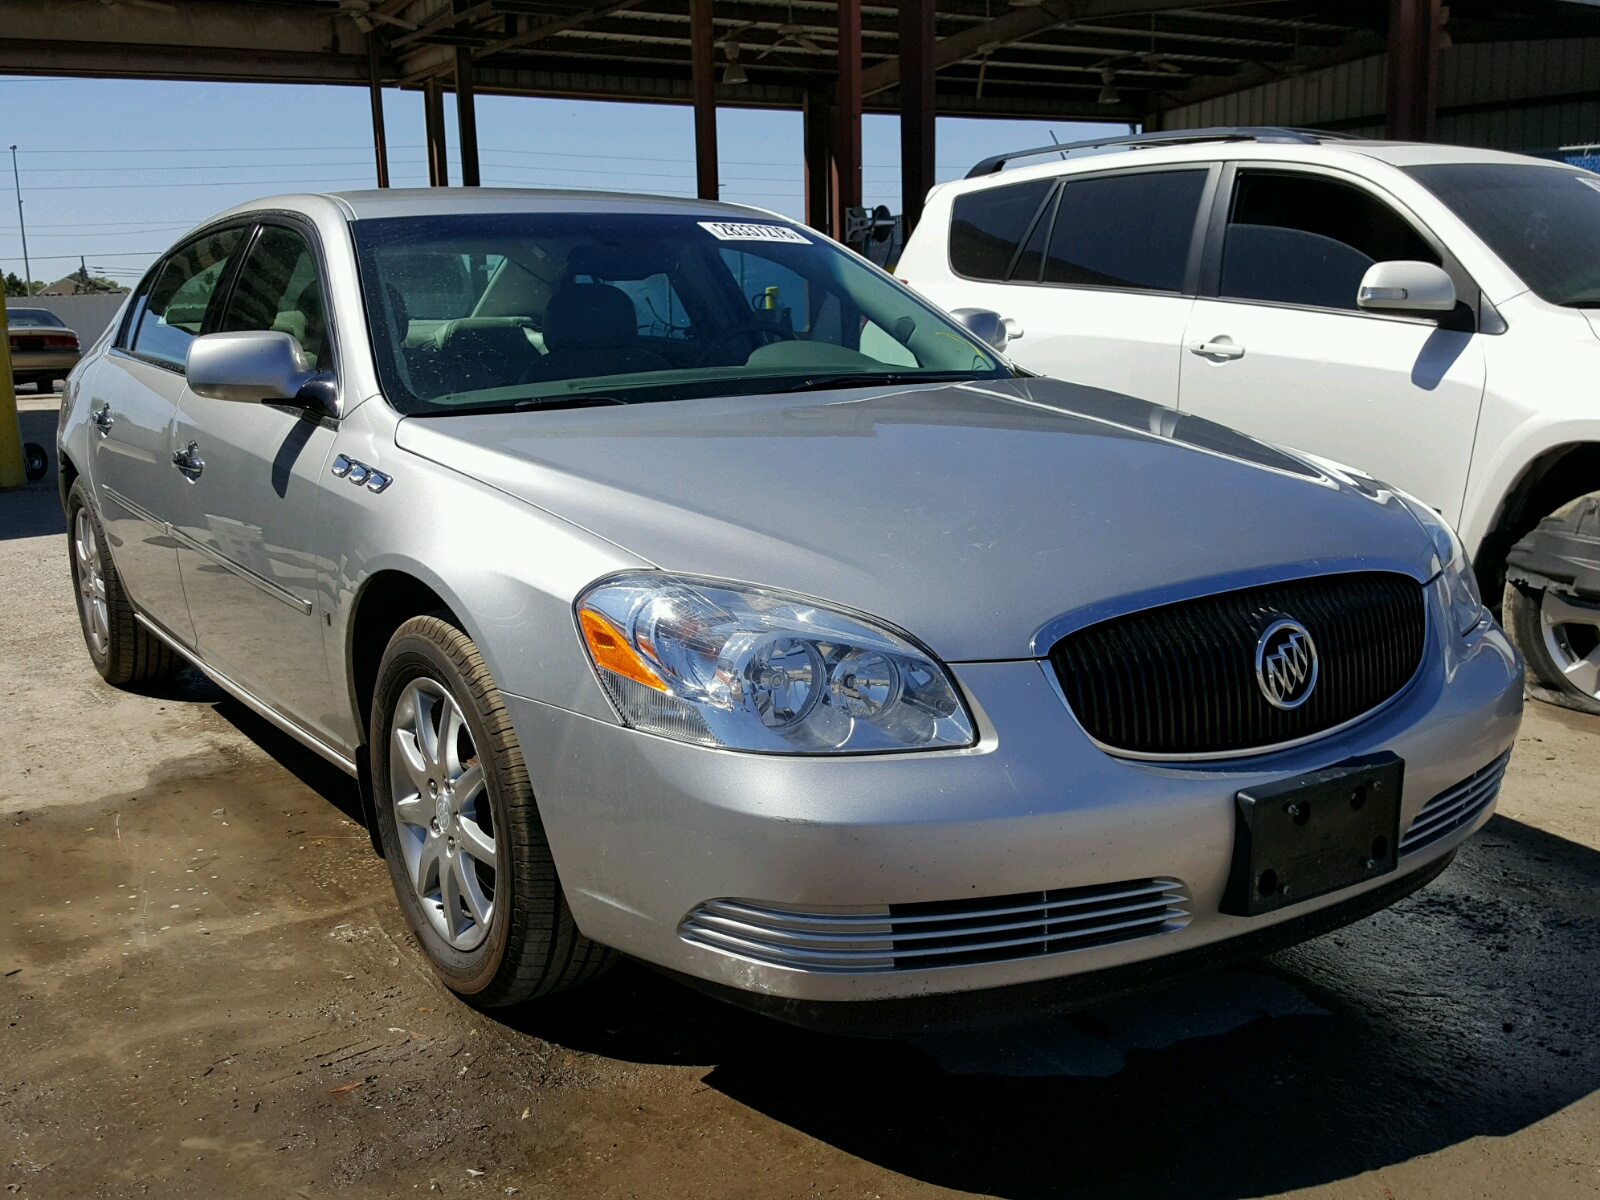 in sale for copart title on nonrepairable gold cx lot tx online en buick dallas auto carfinder lucerne auctions